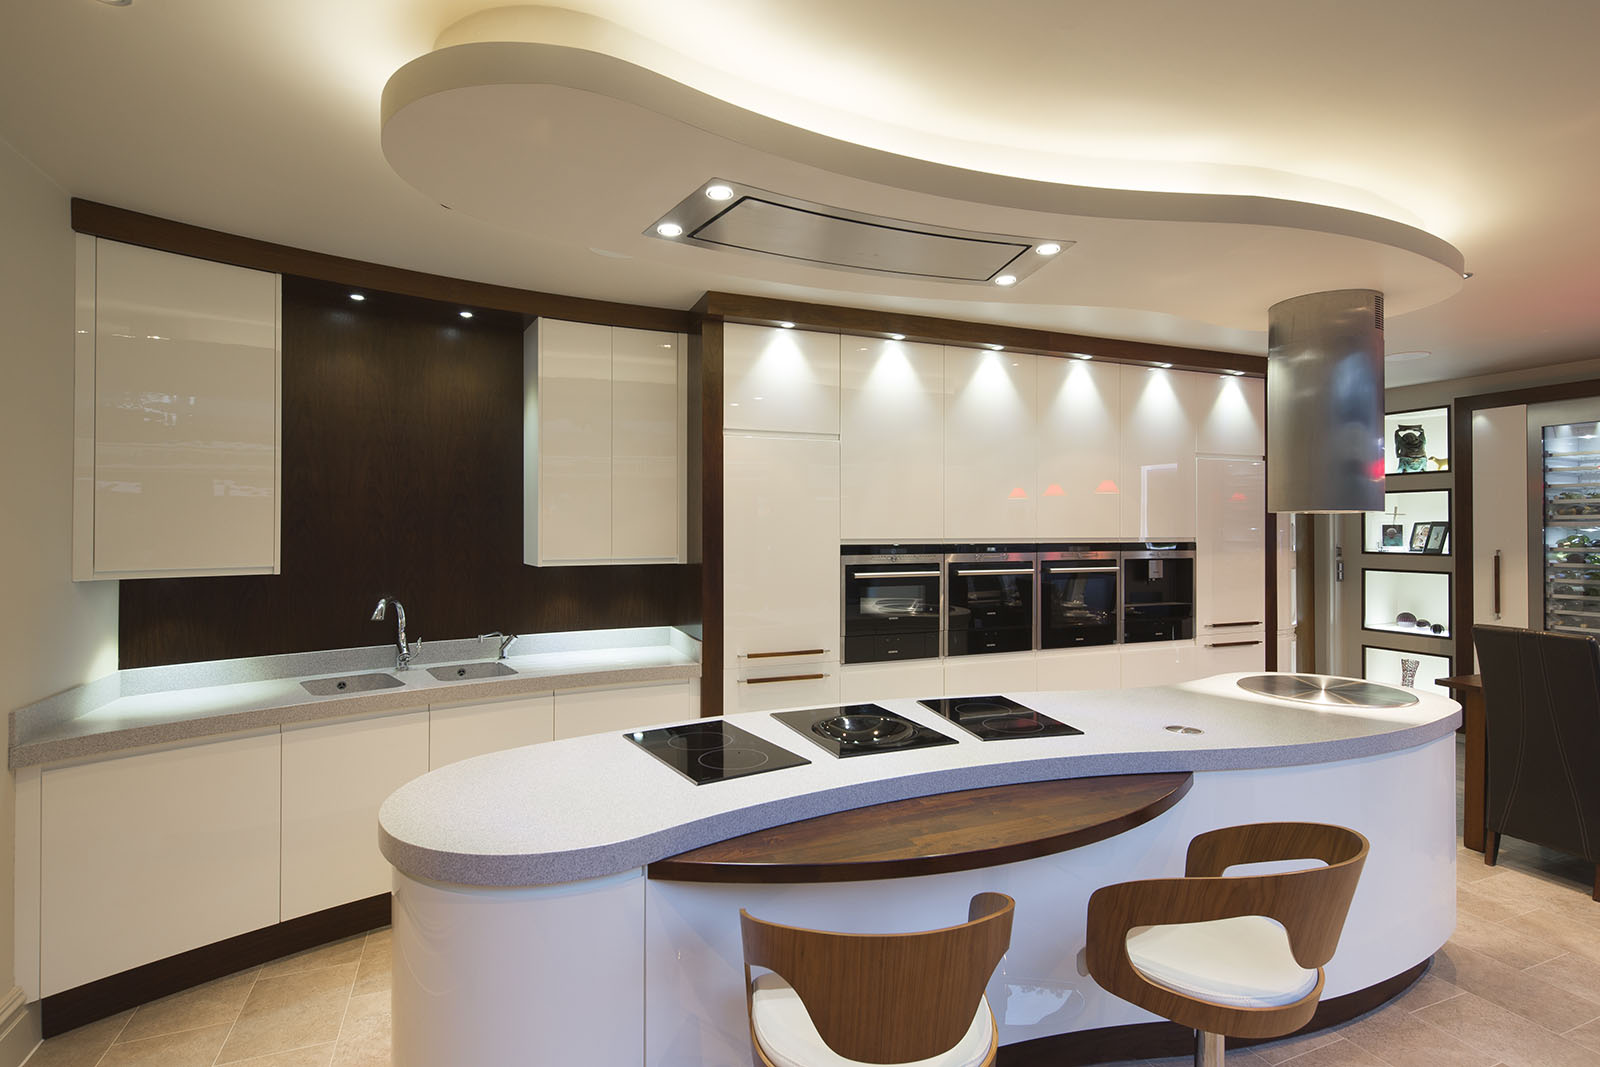 The milano contemporary kitchen by acanthus featuring for Unique design milano